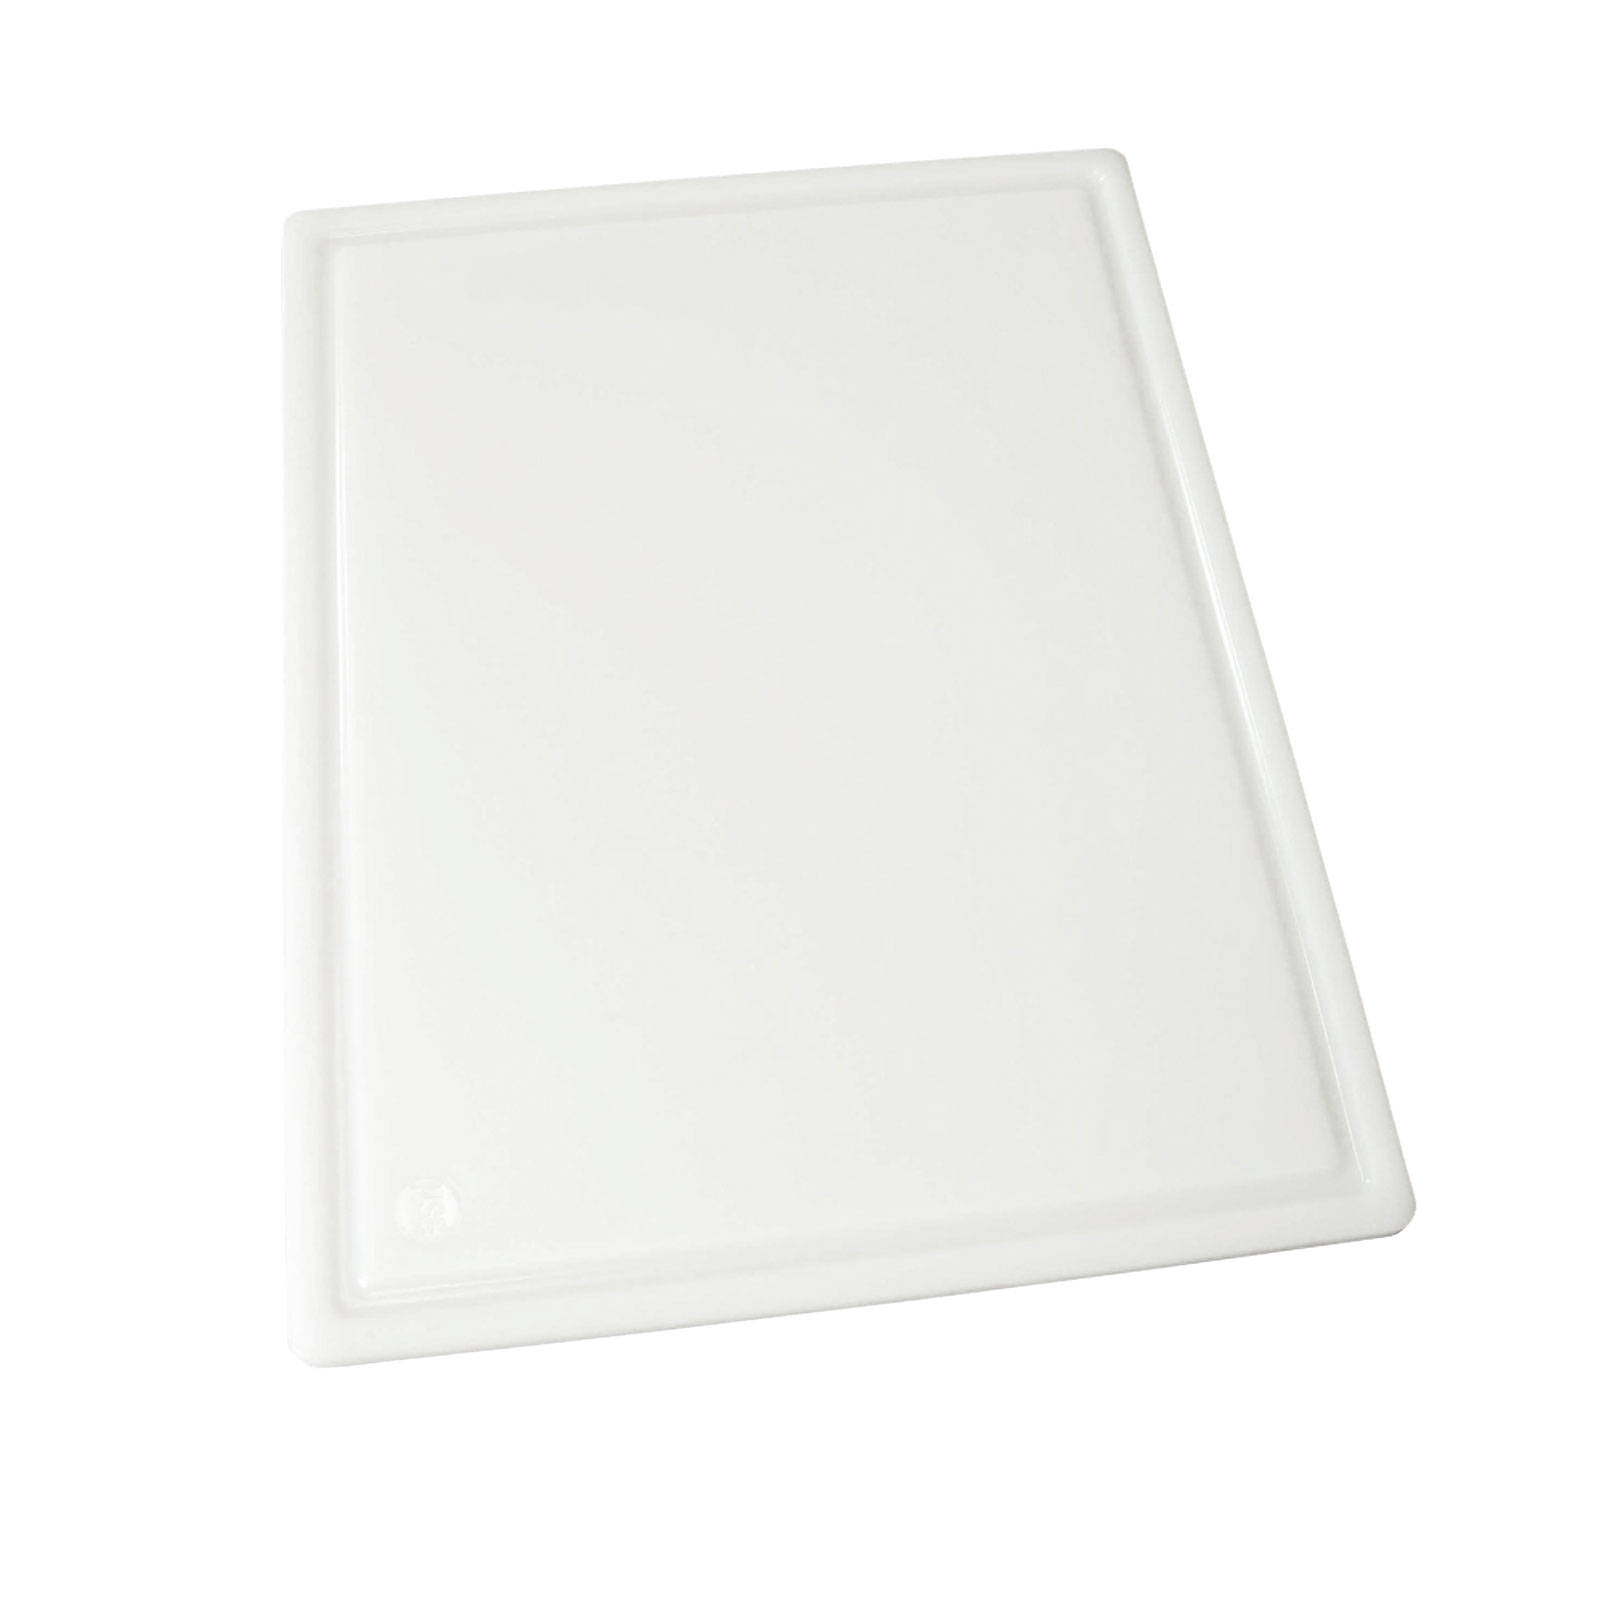 Winco CBI-1824H cutting board, plastic